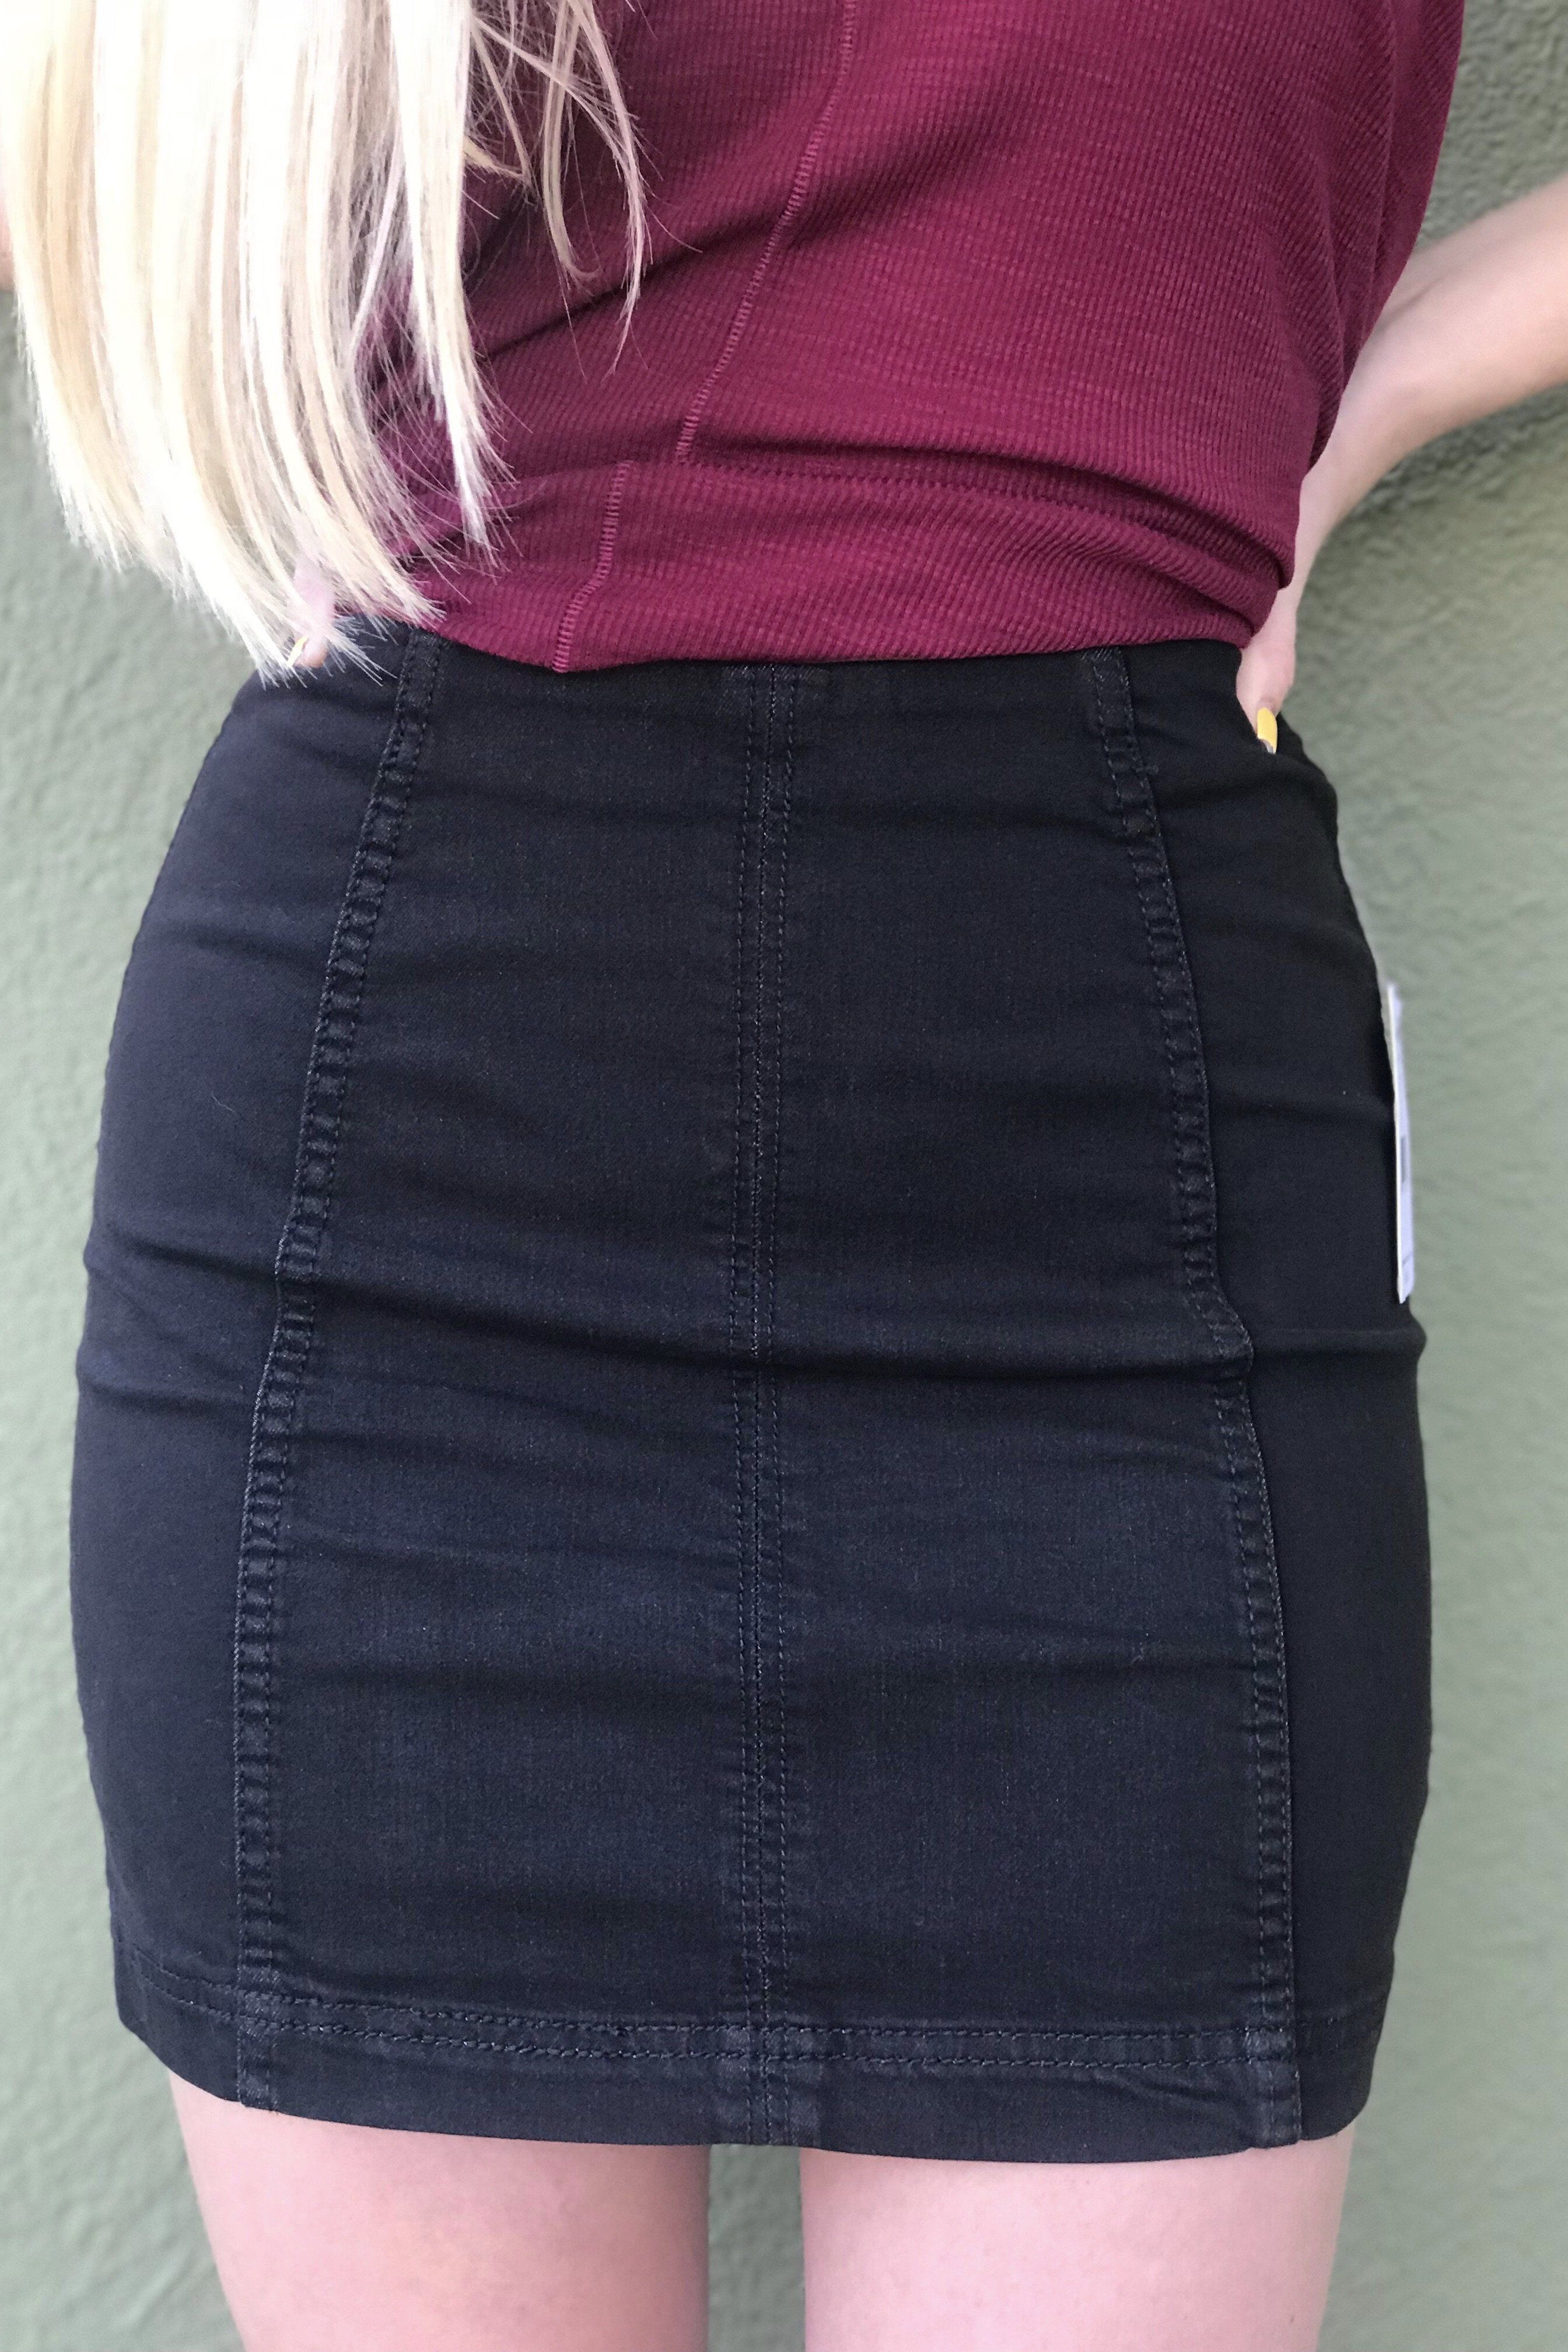 e2b4e1700 Free People Modern Femme Denim Mini Skirt- Black from Chocolate Shoe  Boutique